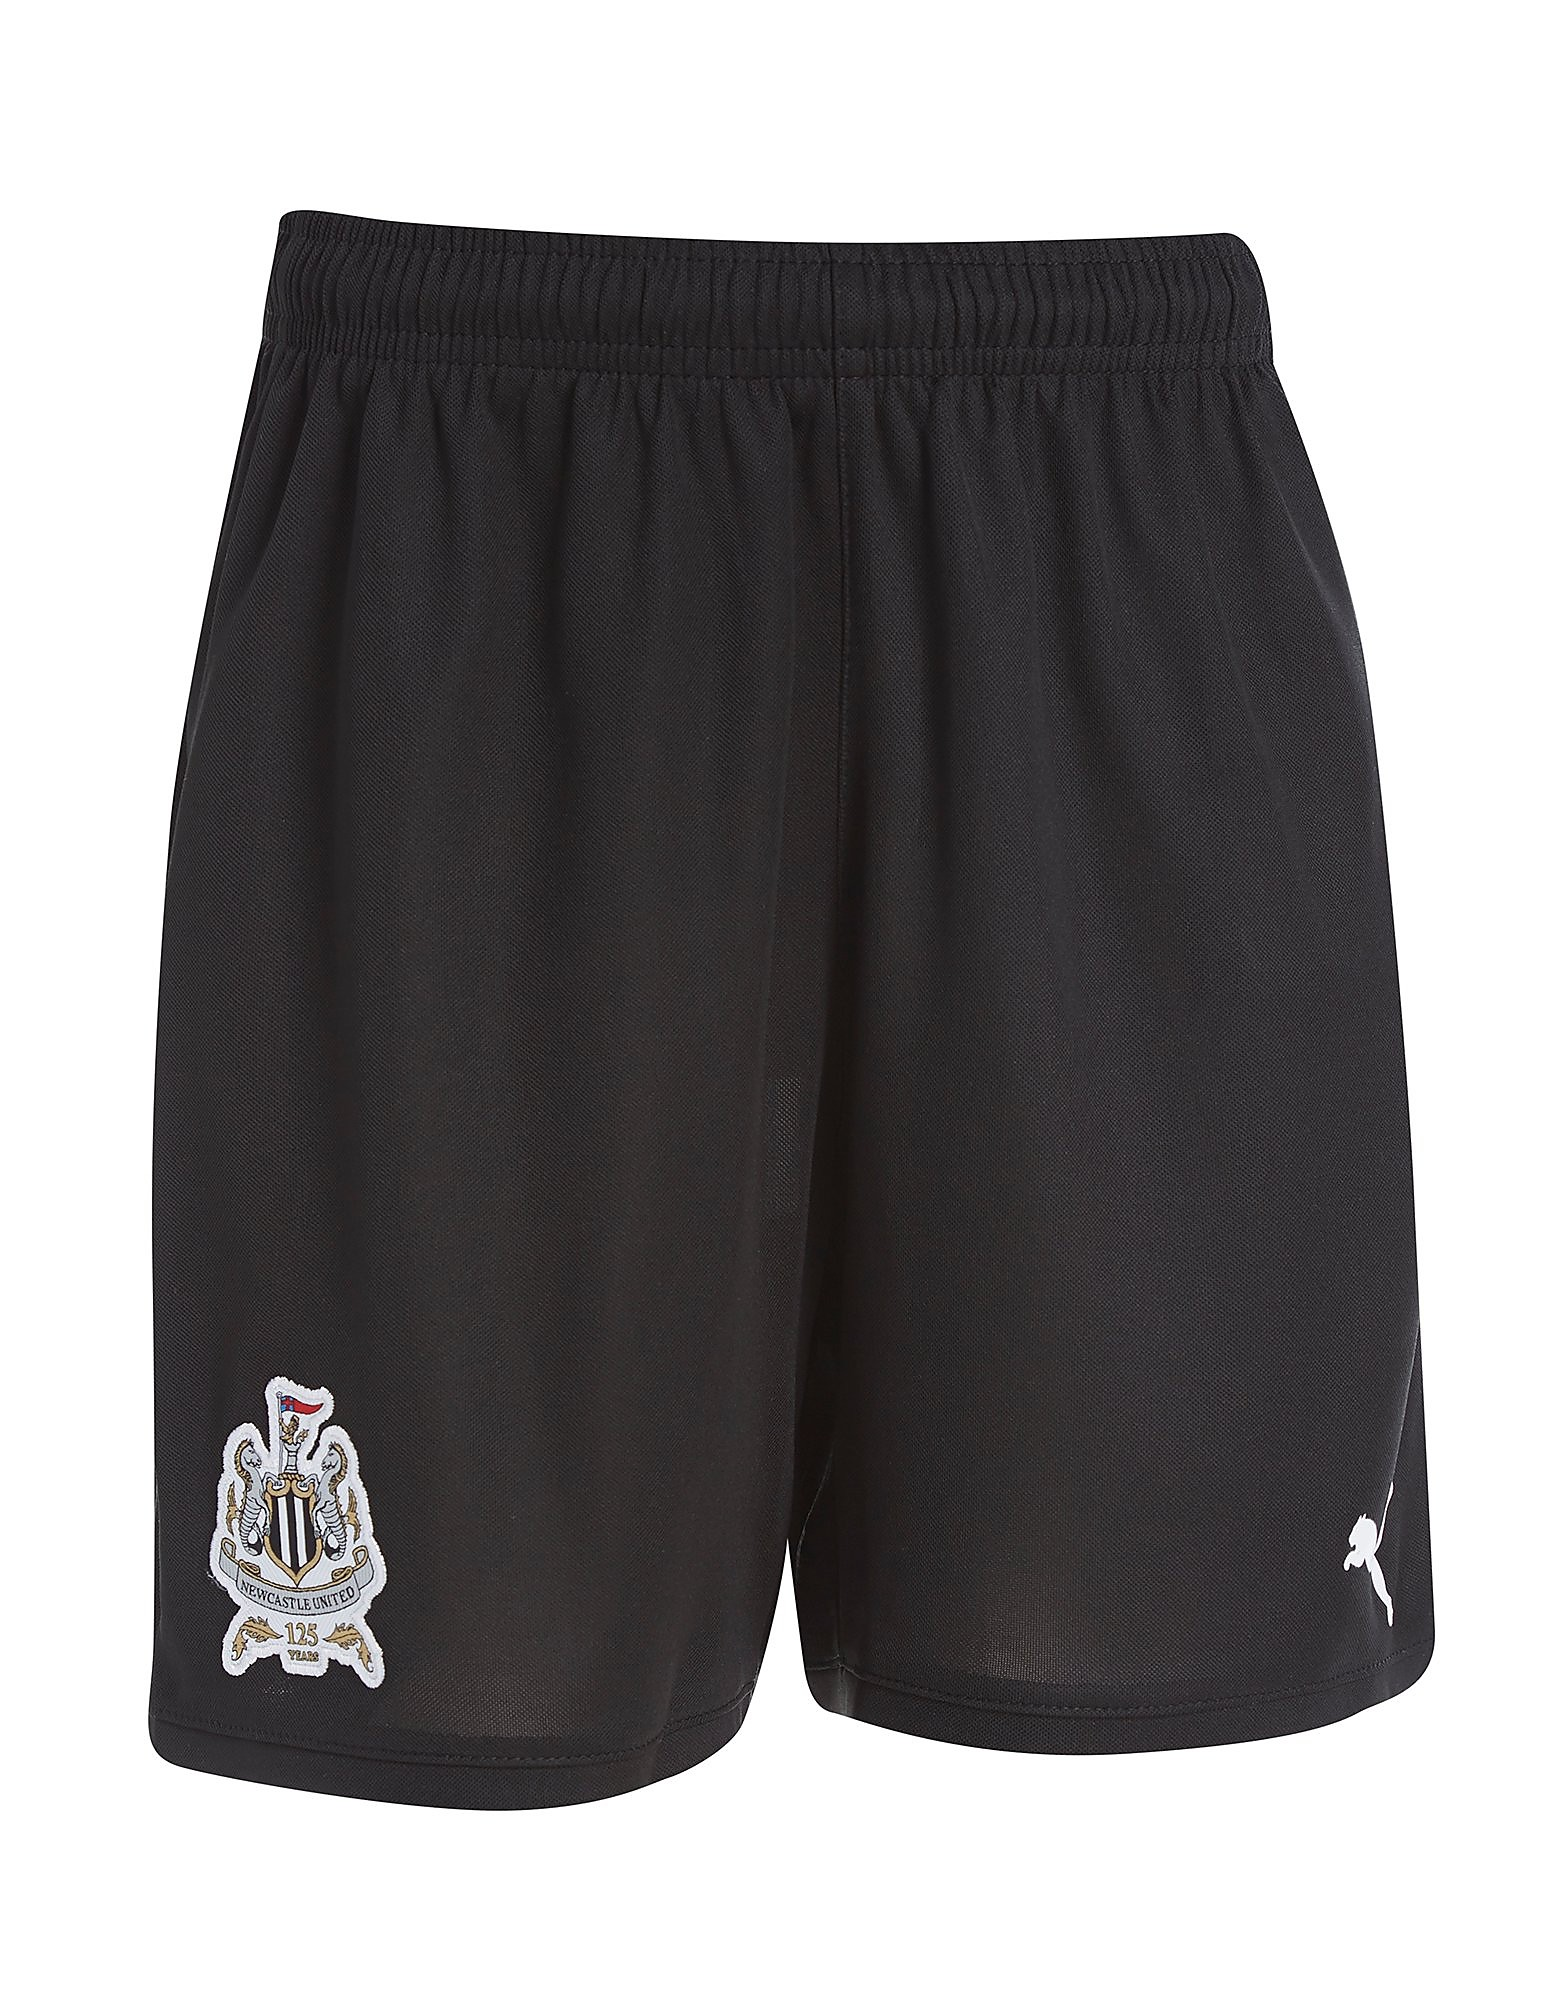 PUMA Newcastle United 2017/18 Home Shorts Jnr PRE ORDER